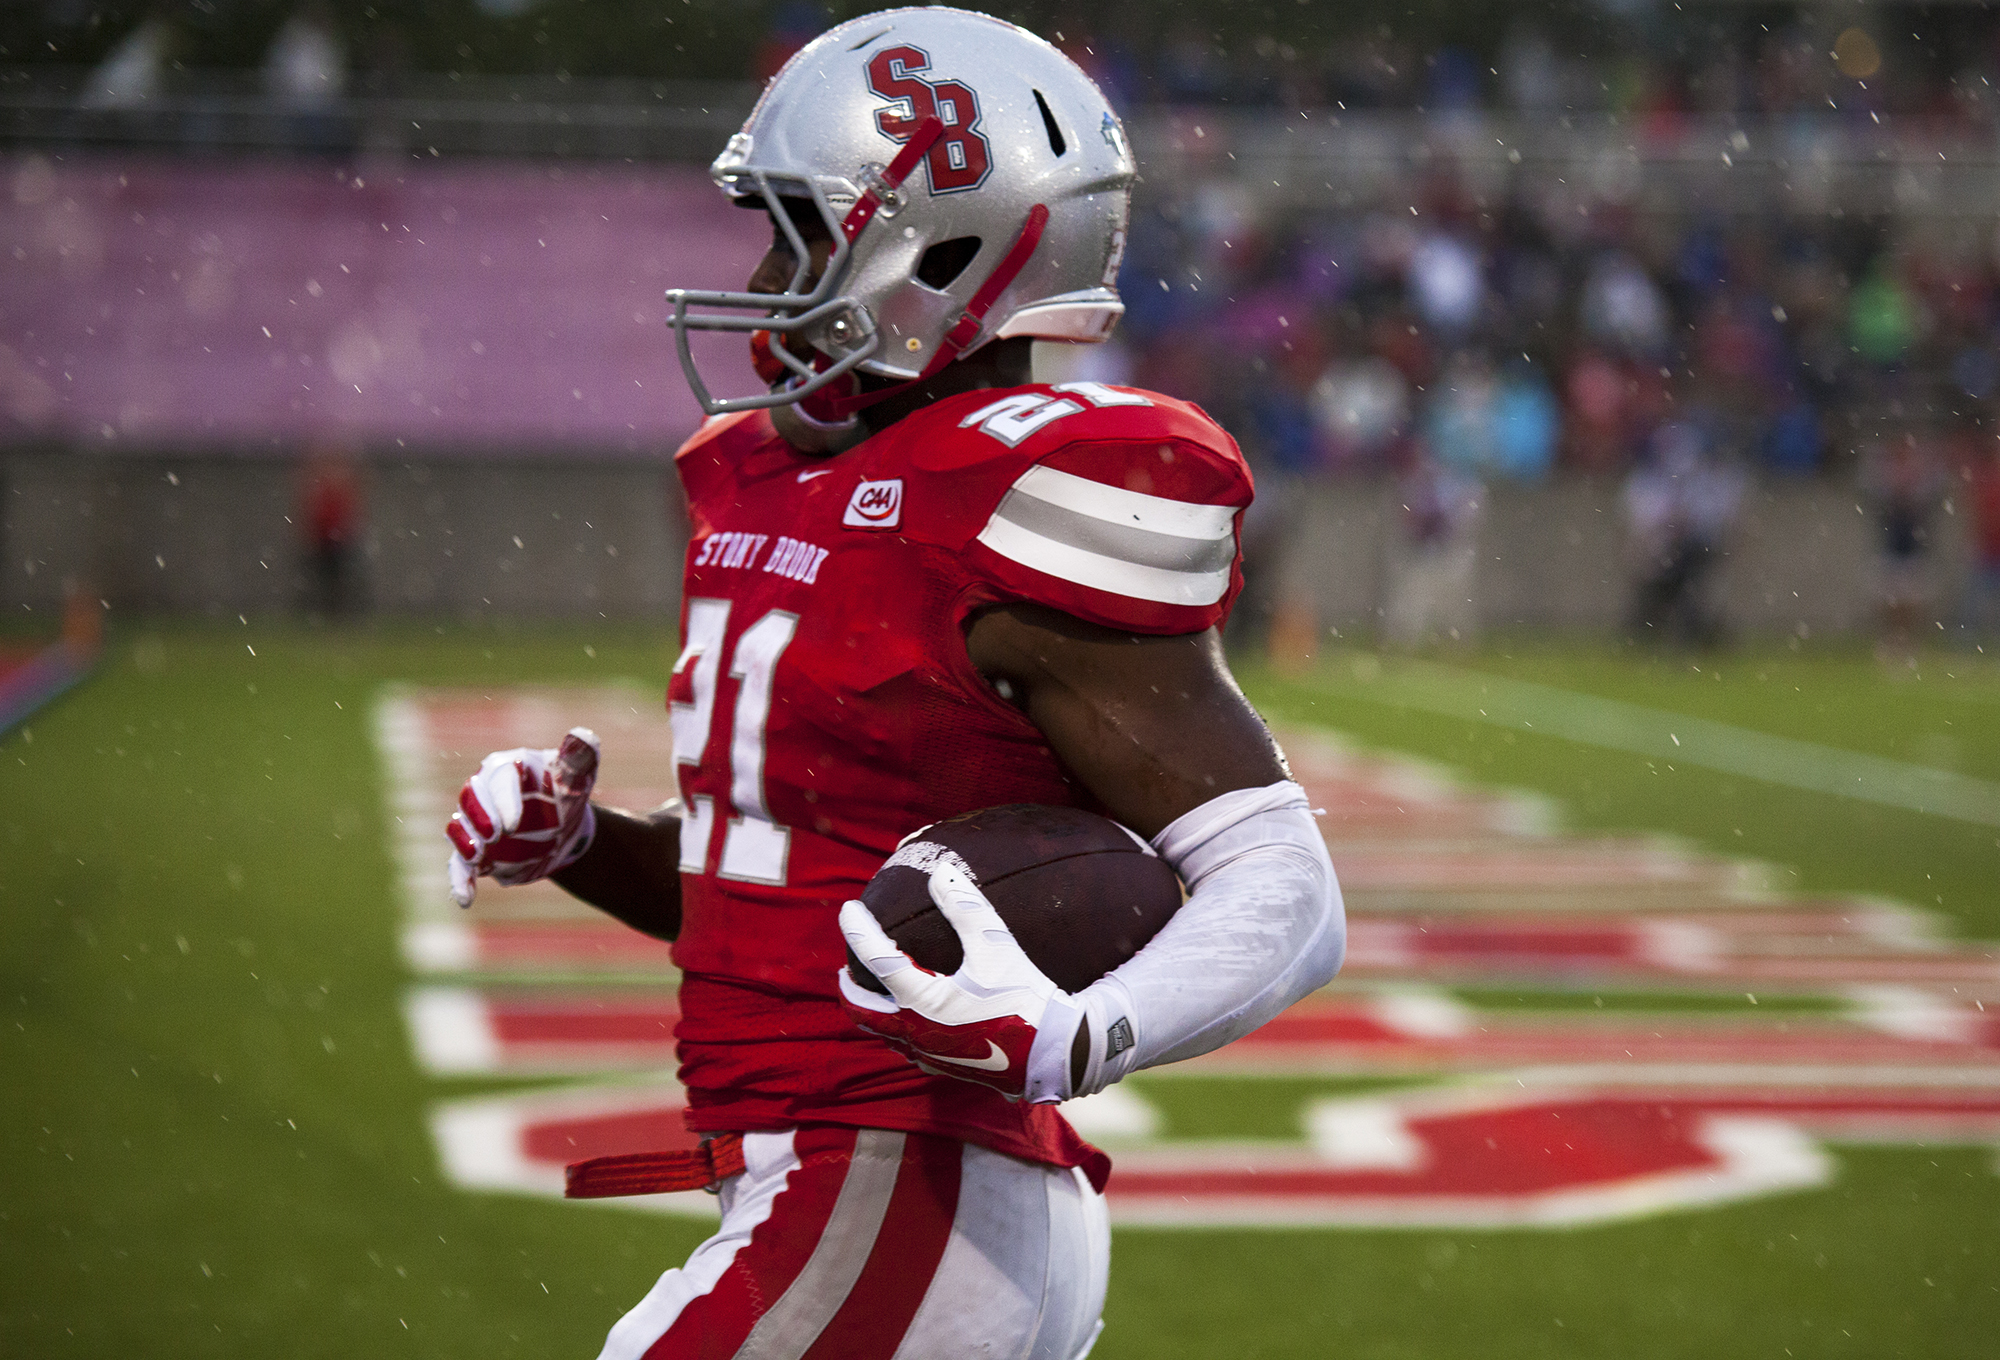 Stony Brook junior running back Stacey Bedell (No. 21, above) in the immediate aftermath of scoring a touchdown against the Central Connecticut Blue Devils in Stony Brook's first football game of the 2015 season. Bedell would end up out of play for the rest of the year due to a shoulder injury. CHRISTOPHER CAMERON/THE STATESMAN